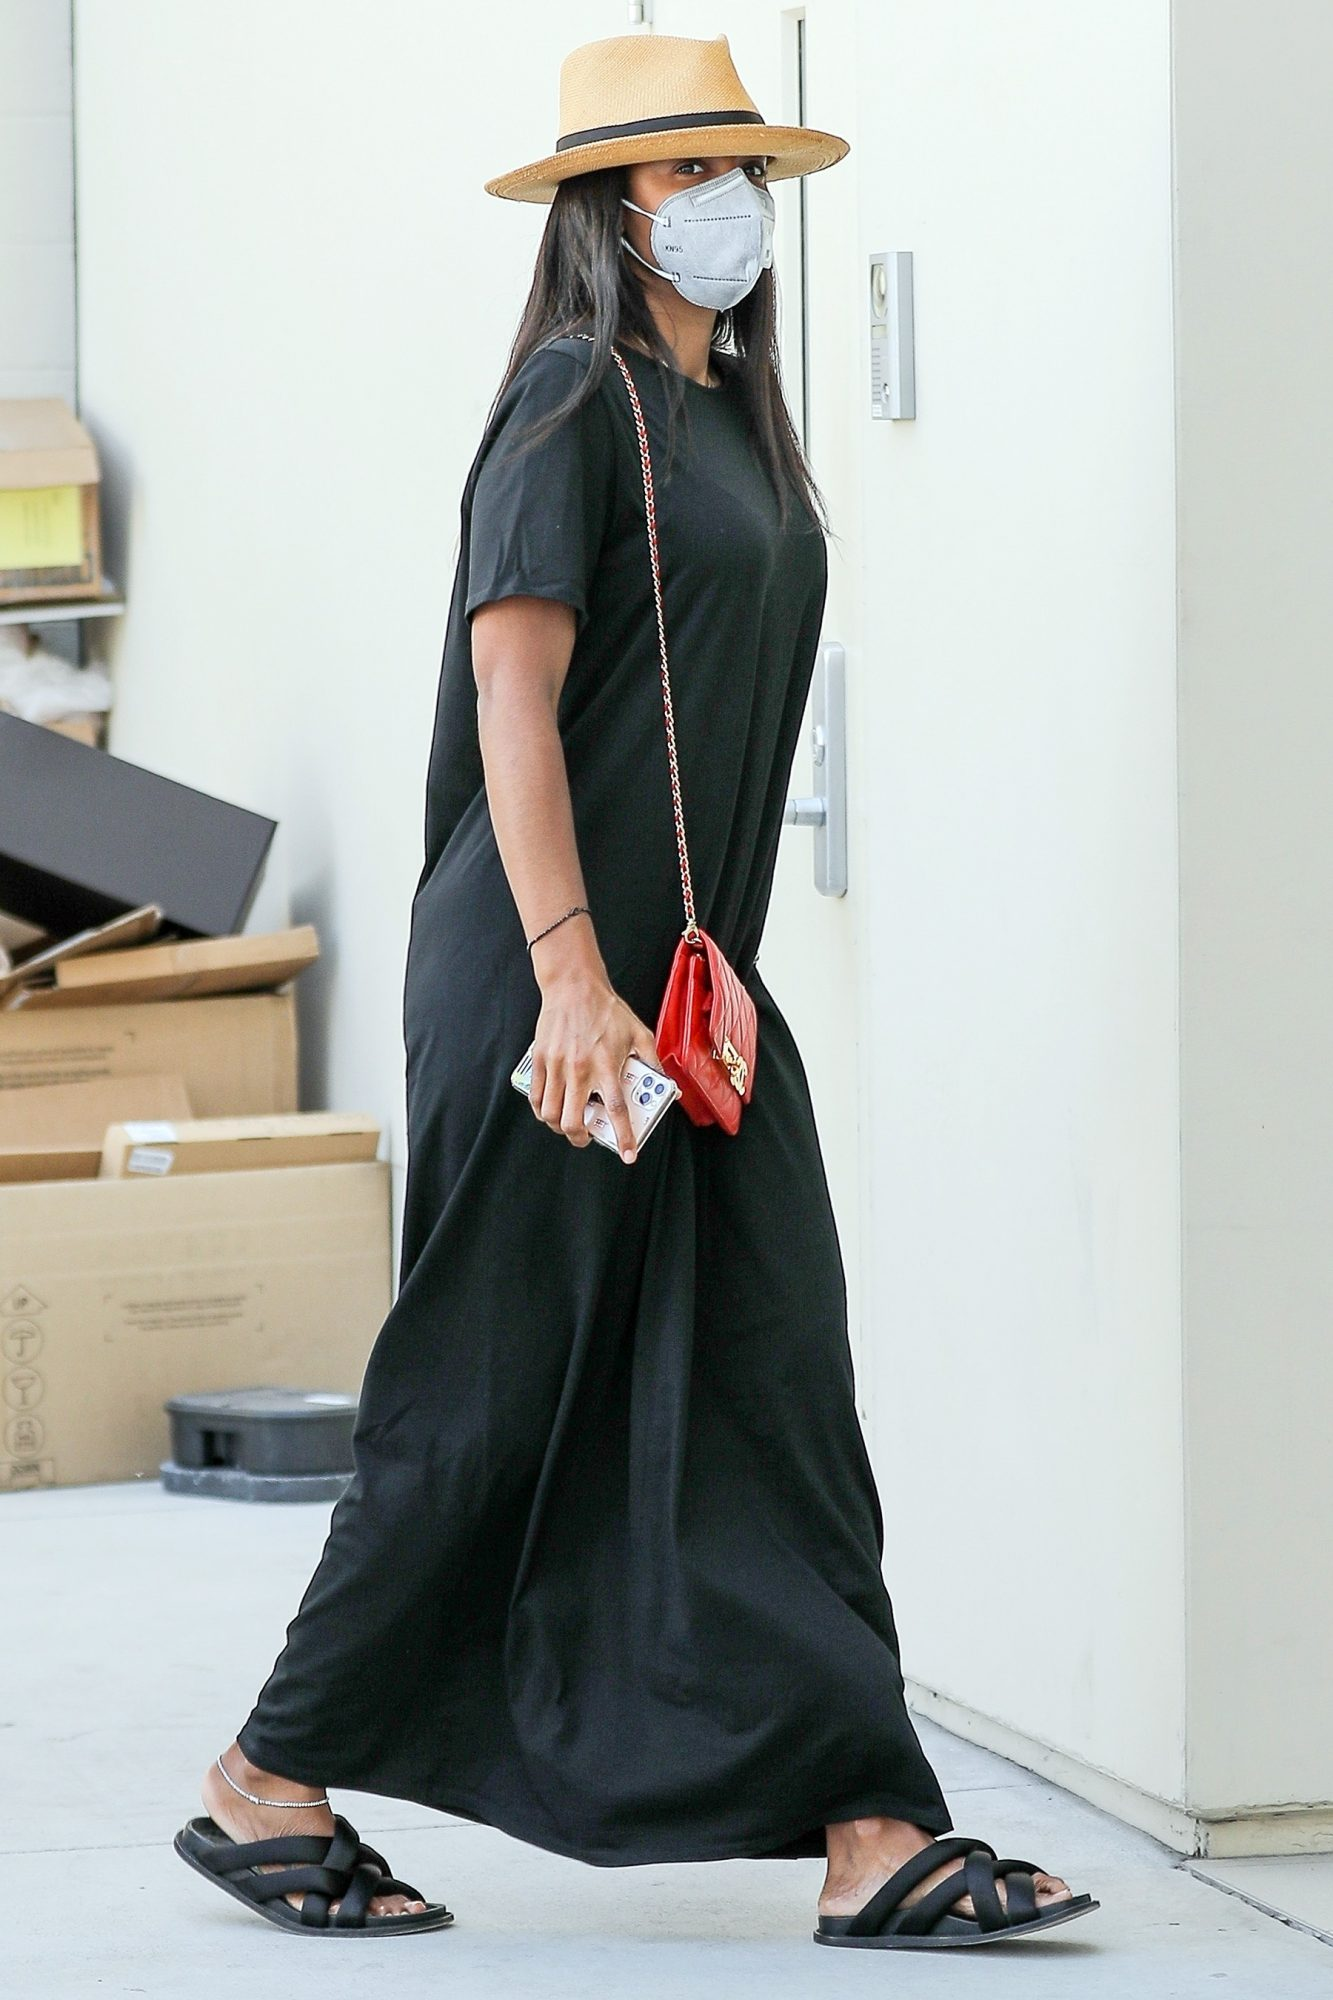 Kelly Rowland waves hello as she arrives at Bottega Veneta for some shopping